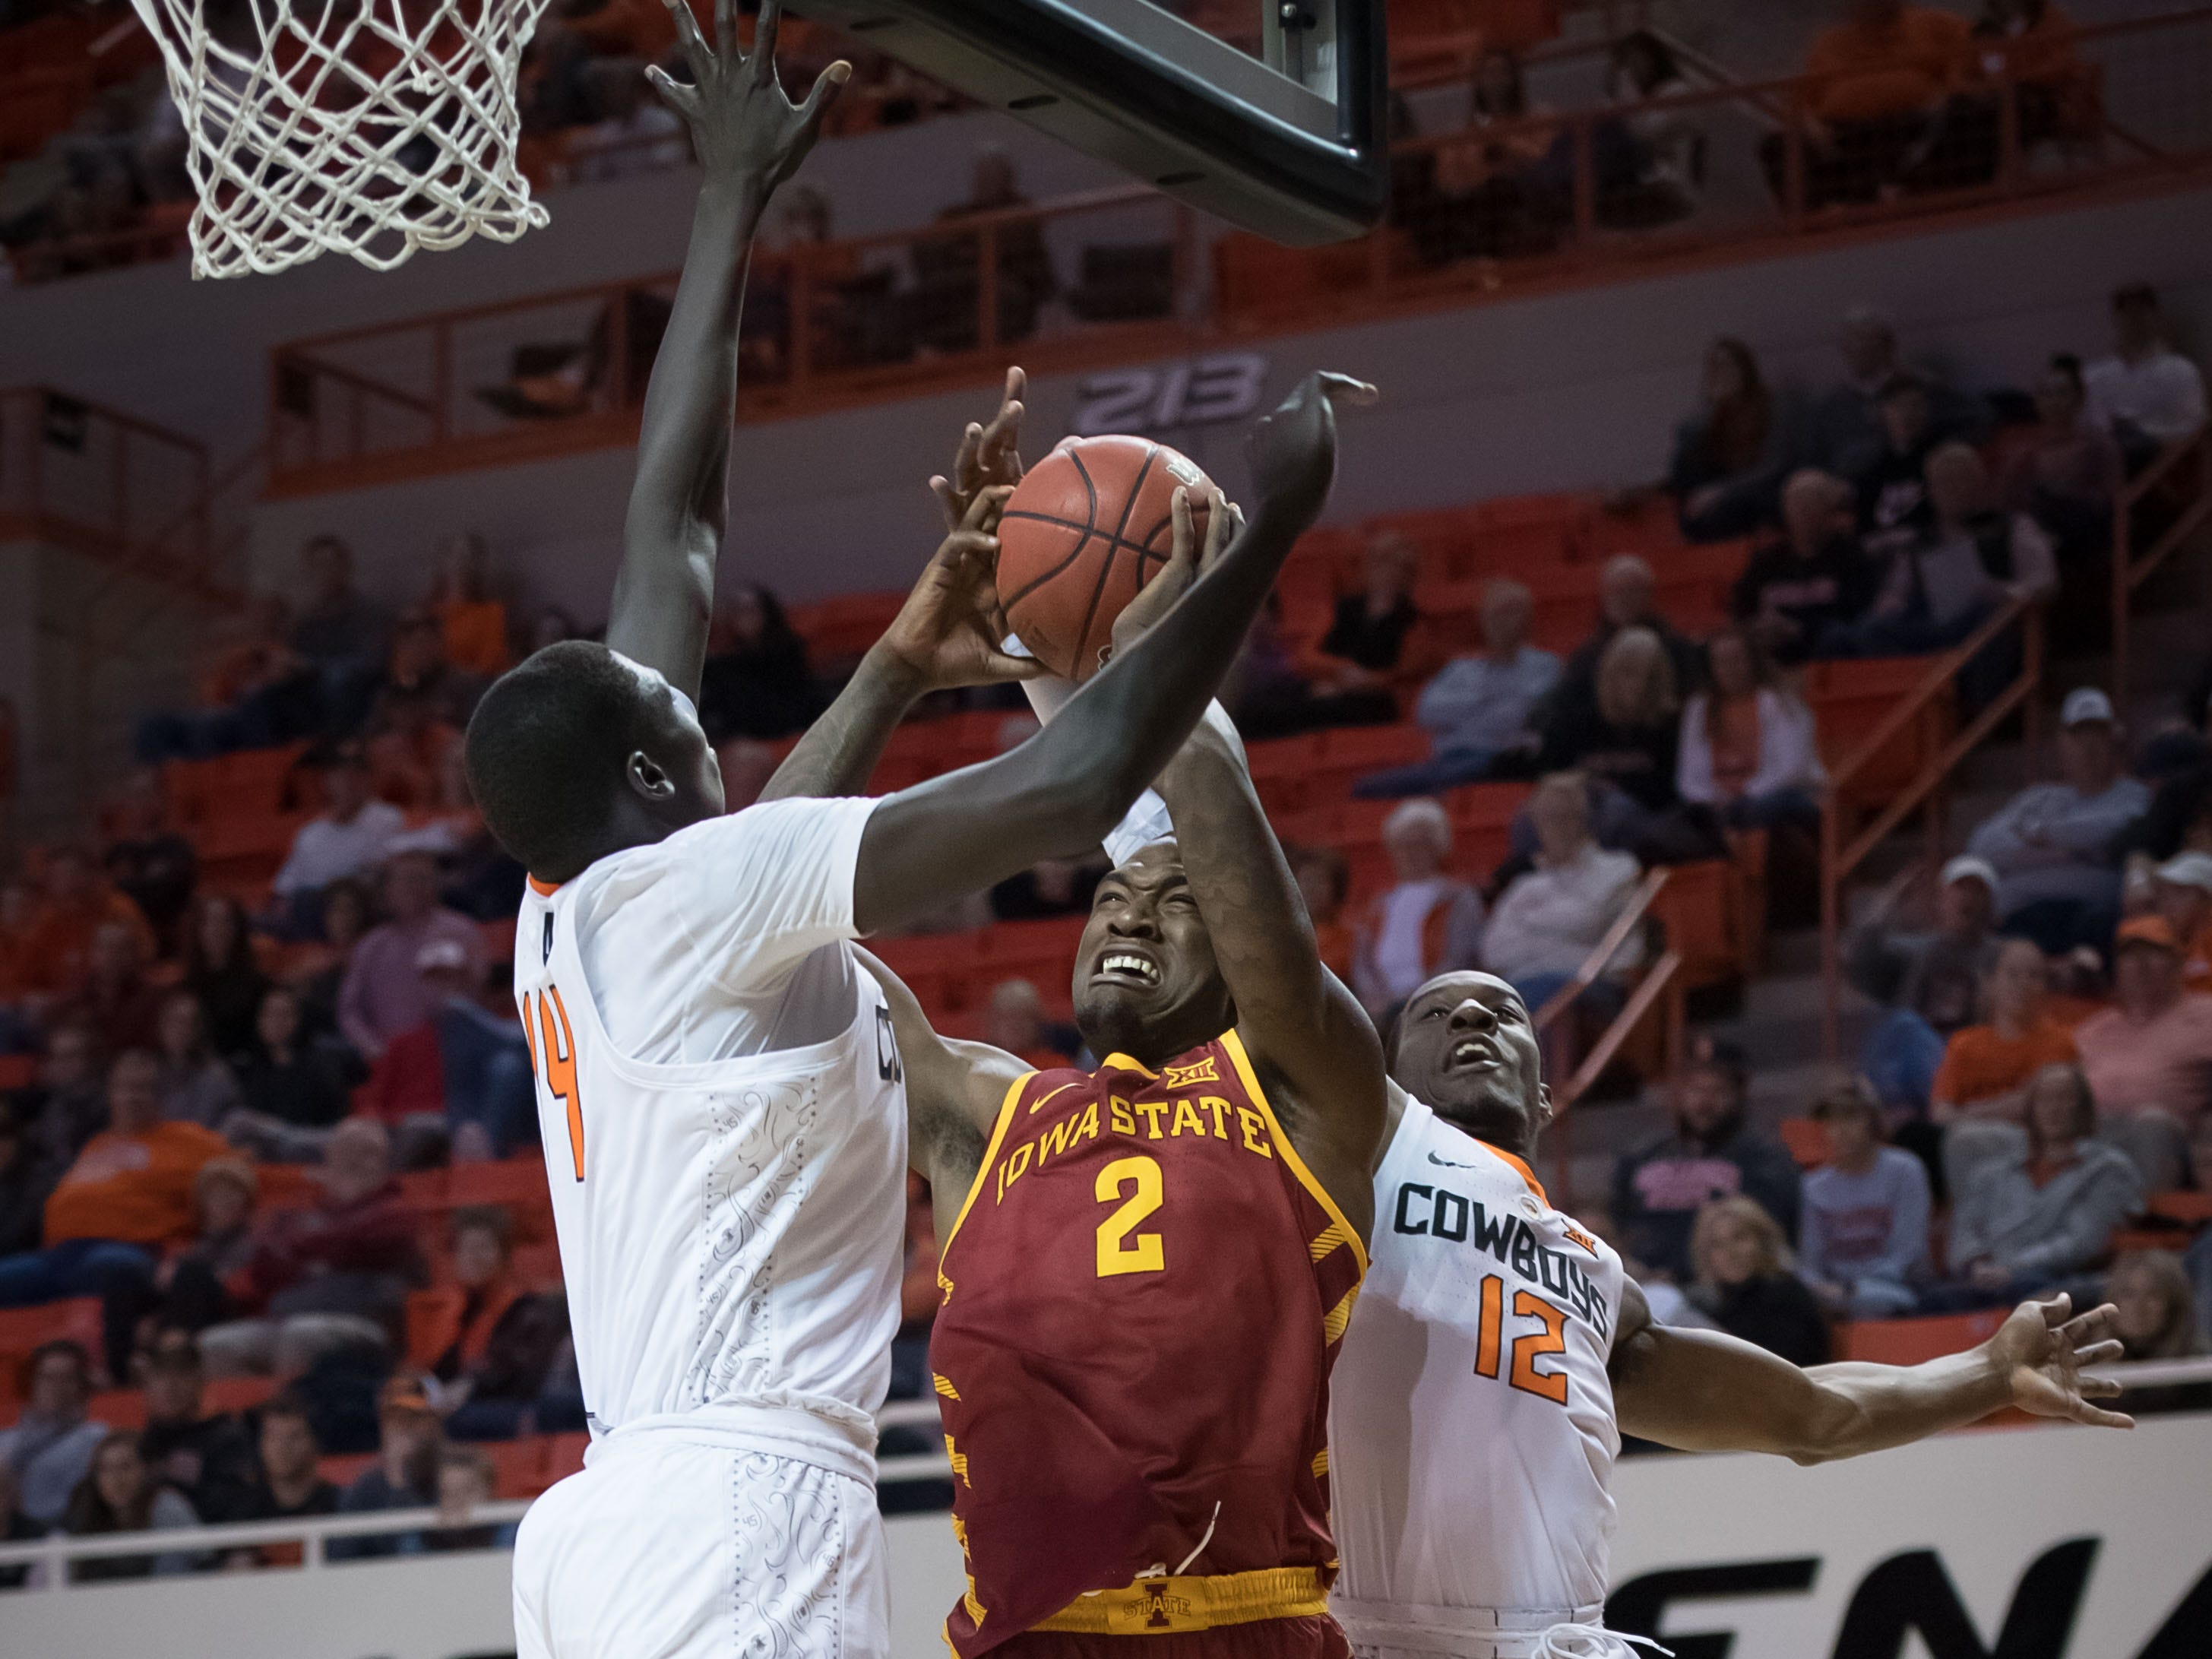 Jan 2, 2019; Stillwater, OK, USA; Iowa State Cyclones forward Cameron Lard (2) shoots the ball as Oklahoma State Cowboys forward Yor Anei (14) defends during the first half at Gallagher-Iba Arena.